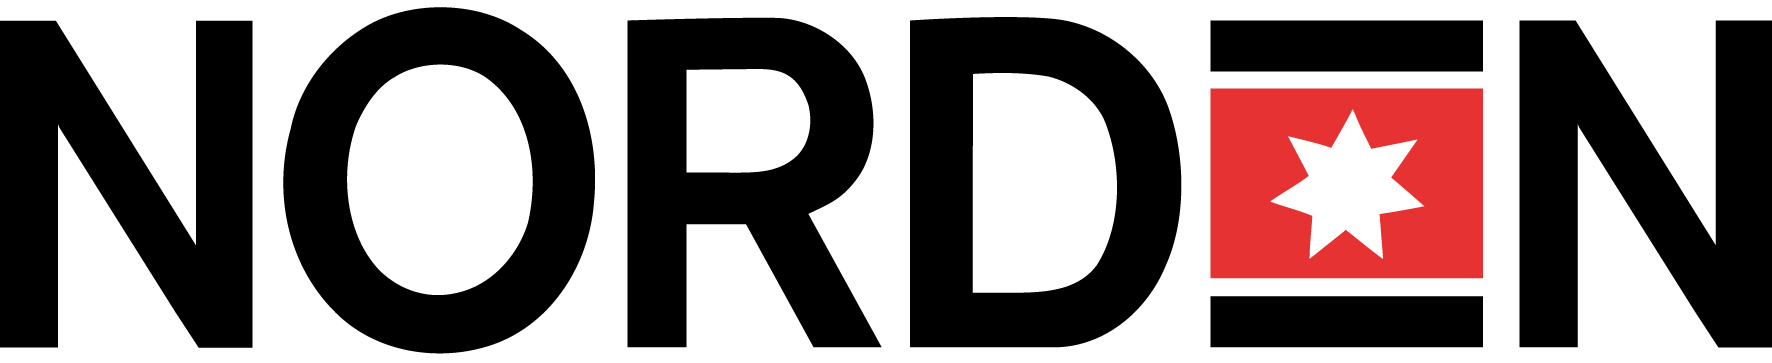 NORDEN_full_logo_RGB_150x31mm_300ppi_WORD.jpg